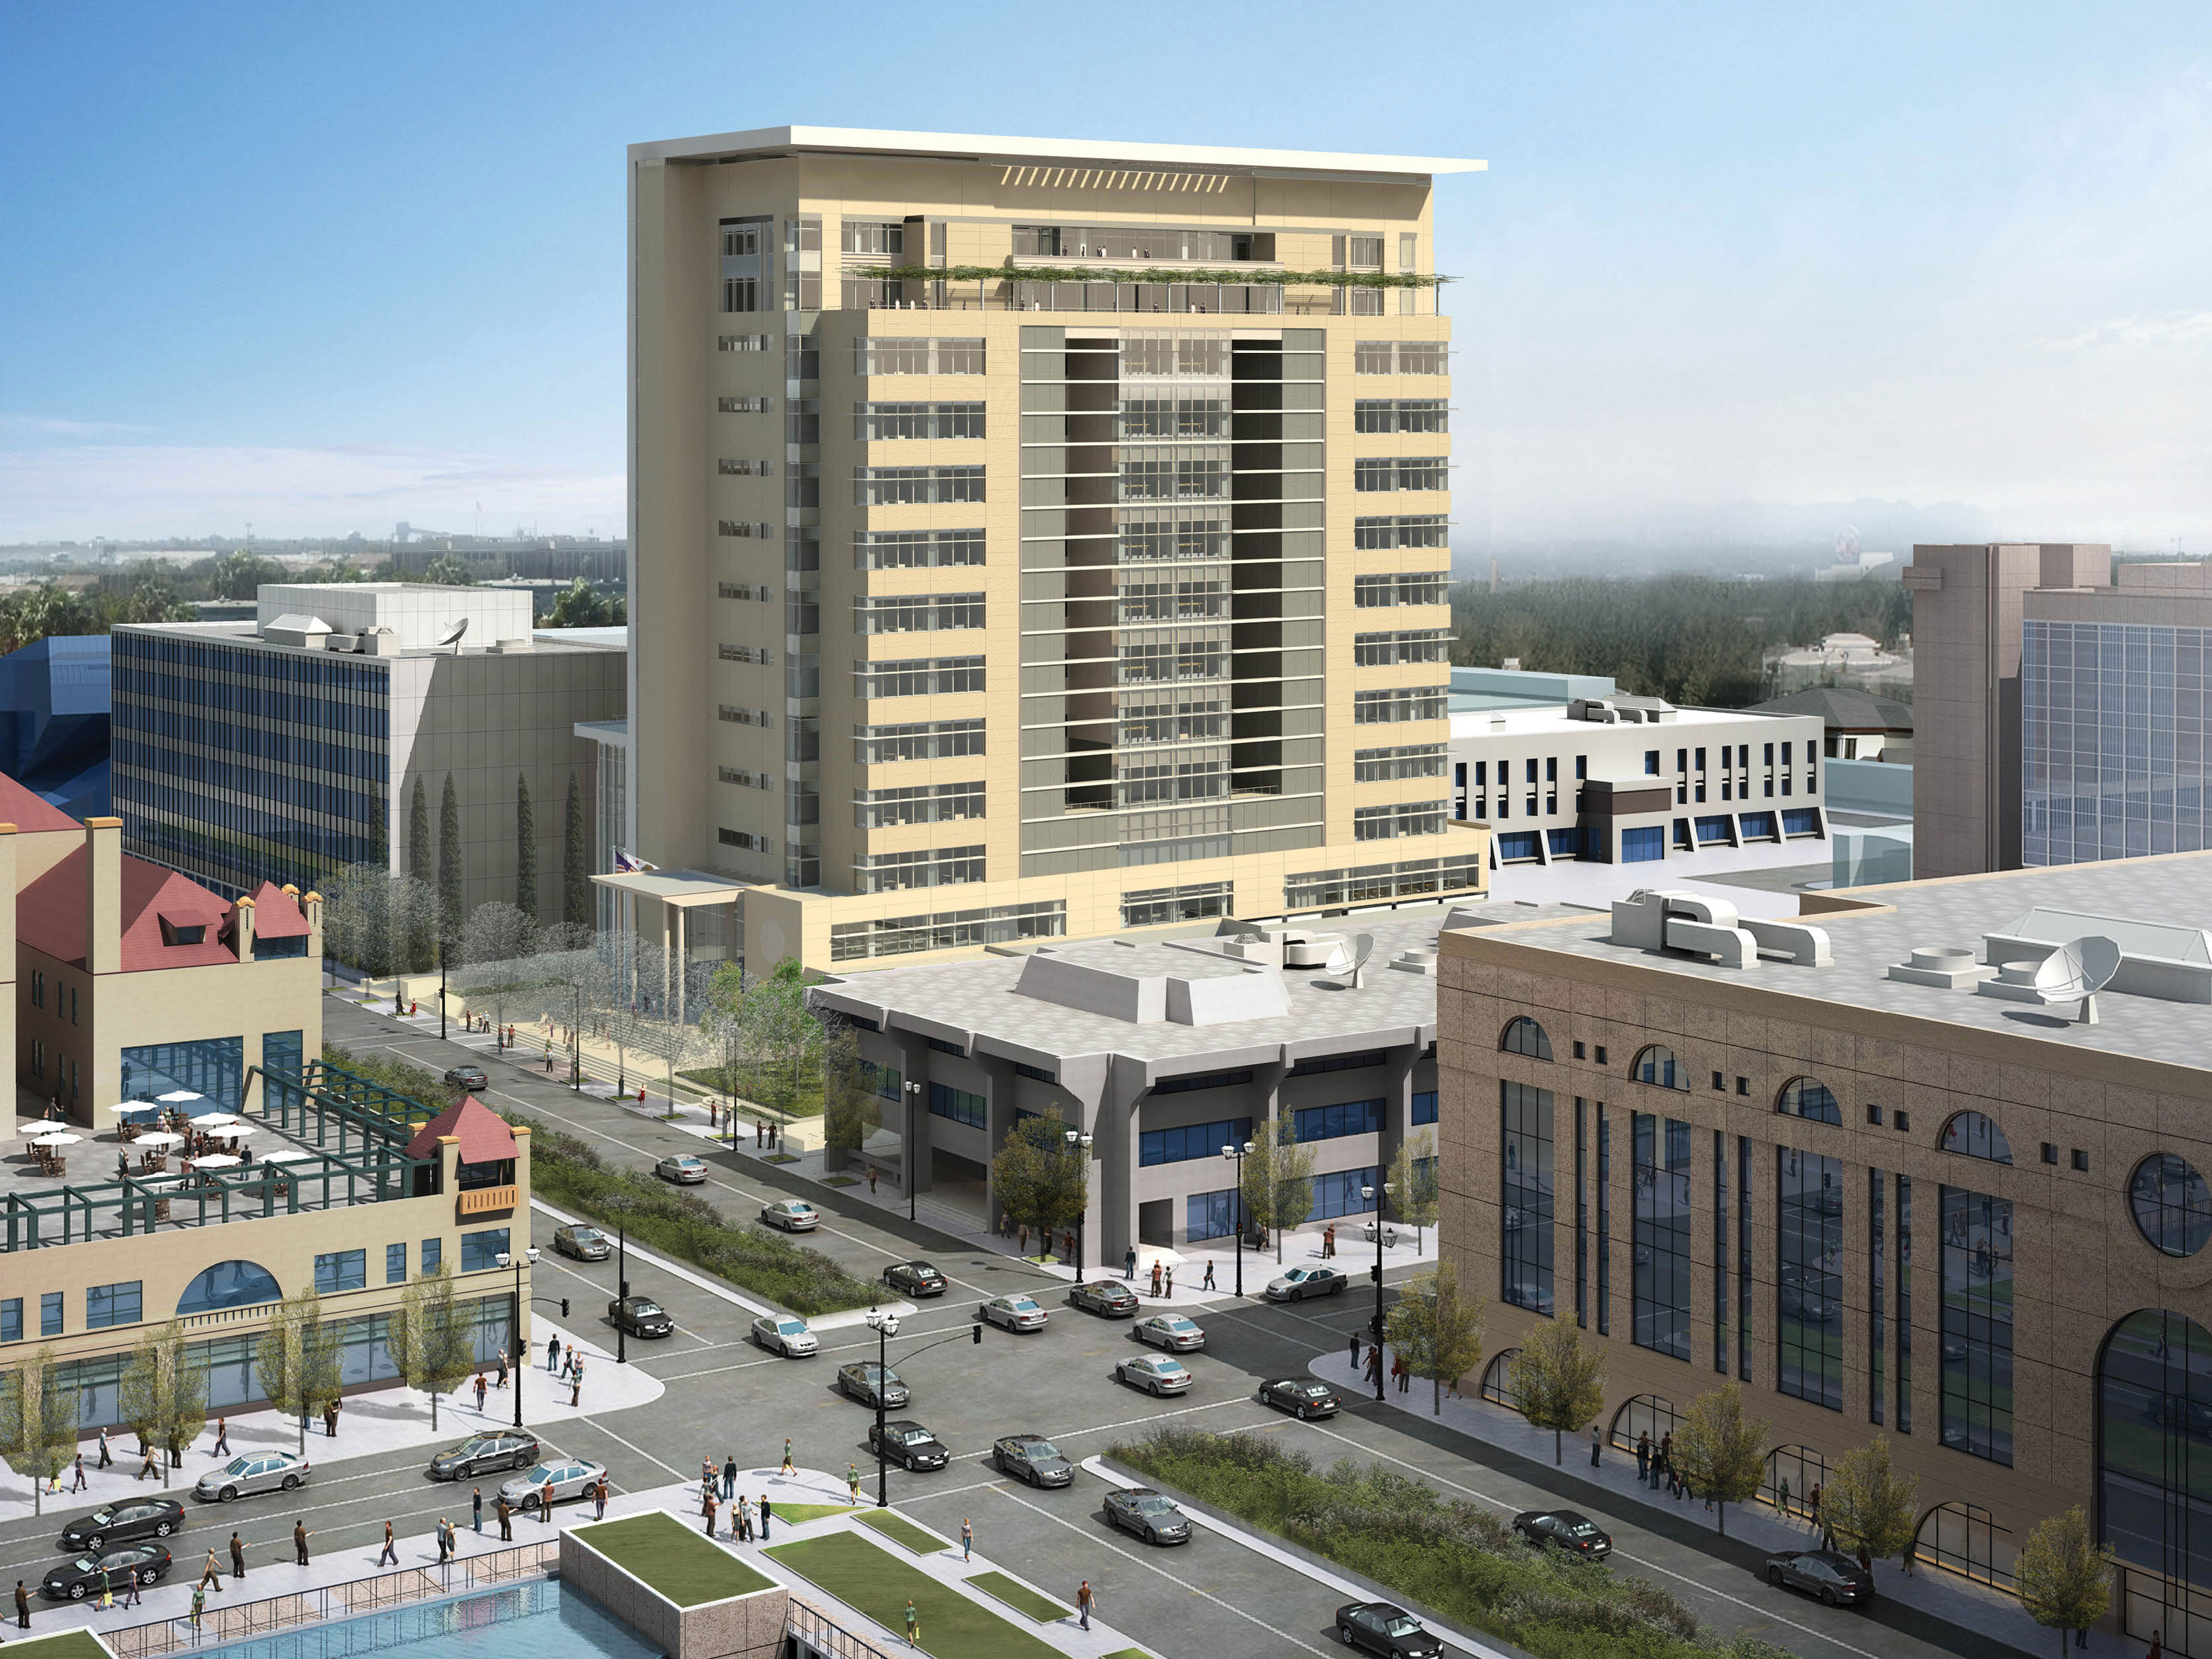 New County Courthouse Will Transform Downtown Stockton